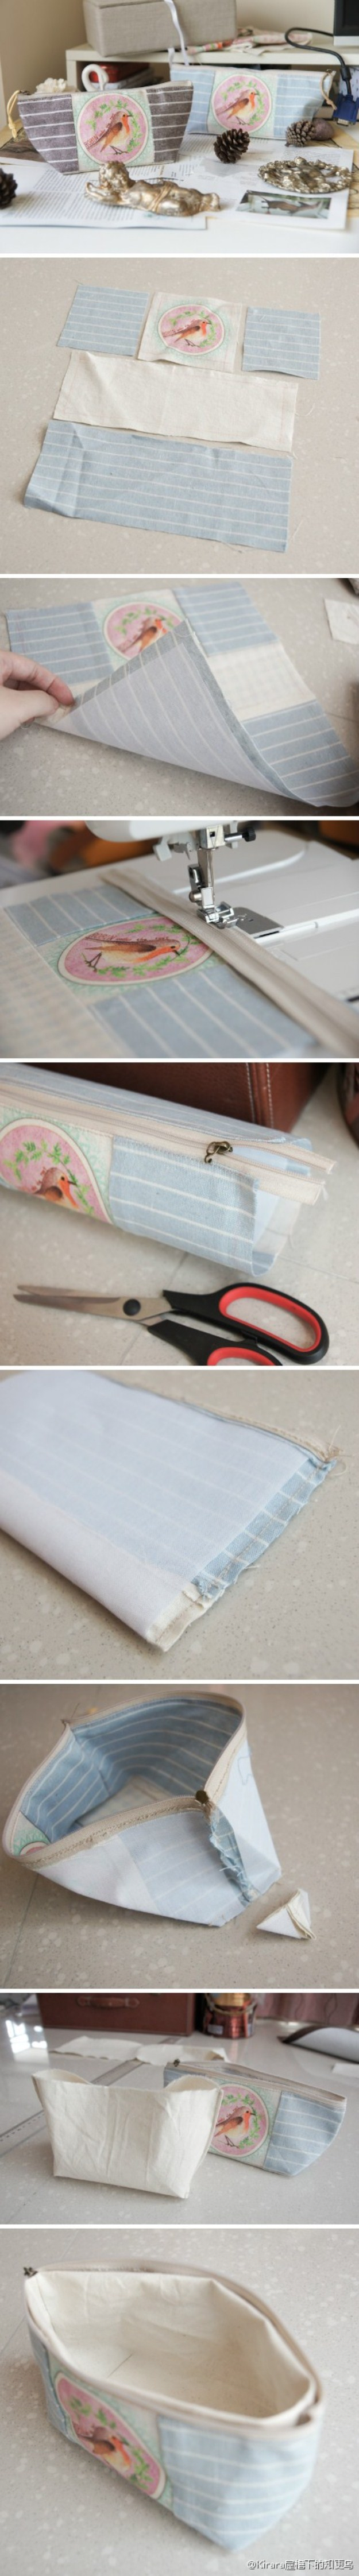 How-to-make-cosmetic-bag-step-by-step-DIY-tutorial-picture-instructions